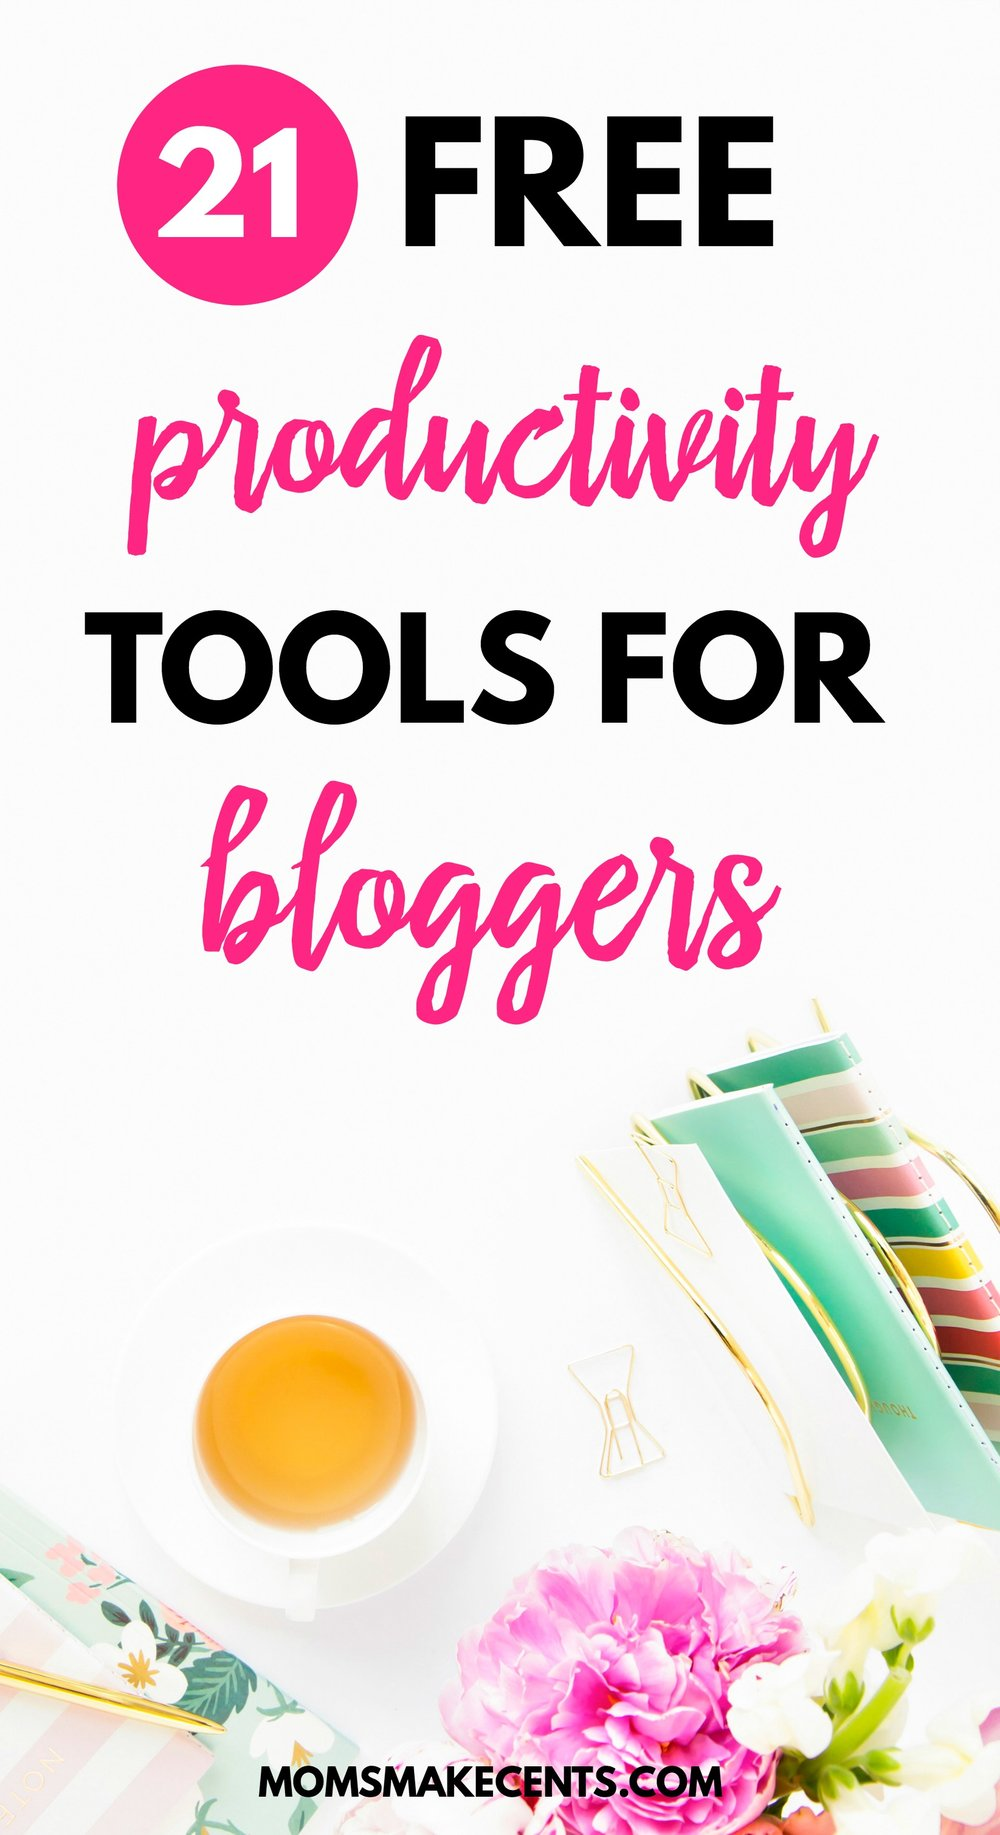 productivity-tools-bloggers